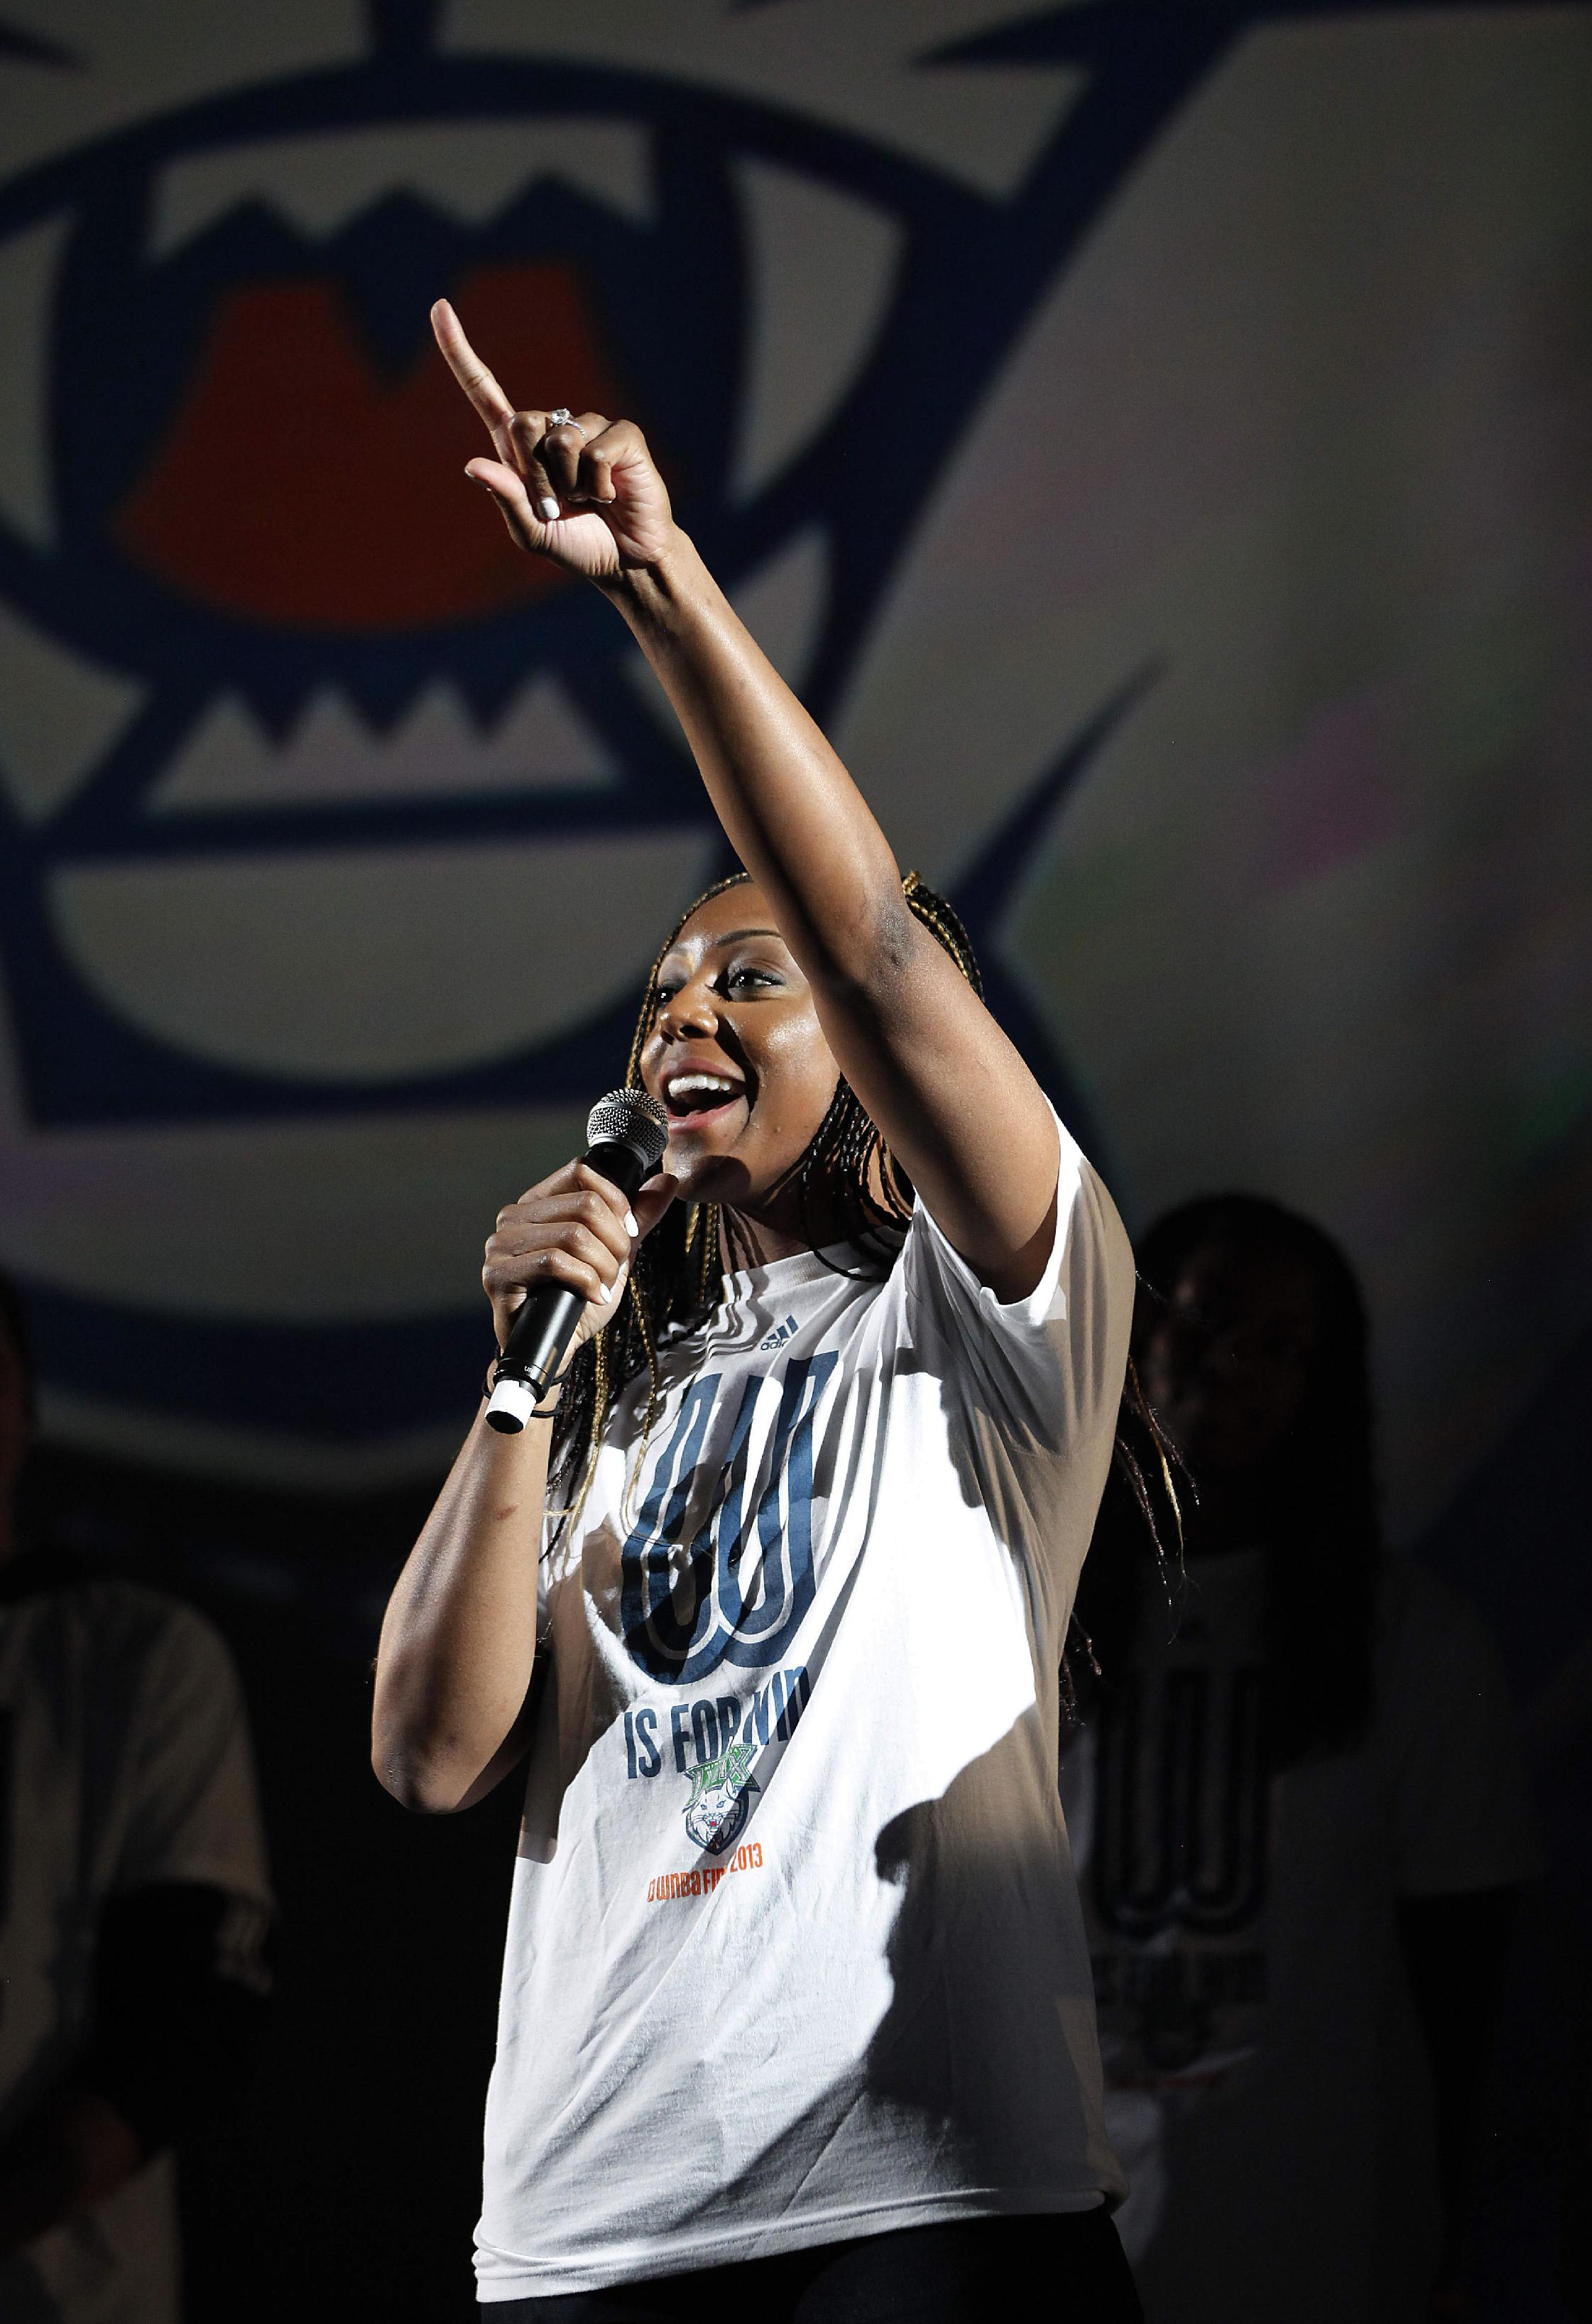 Minnesota Lynx guard Monica Wright rallies up the crowd during the celebration for the team's recent WNBA Championship title, Monday, Oct. 14, 2013, in Minneapolis